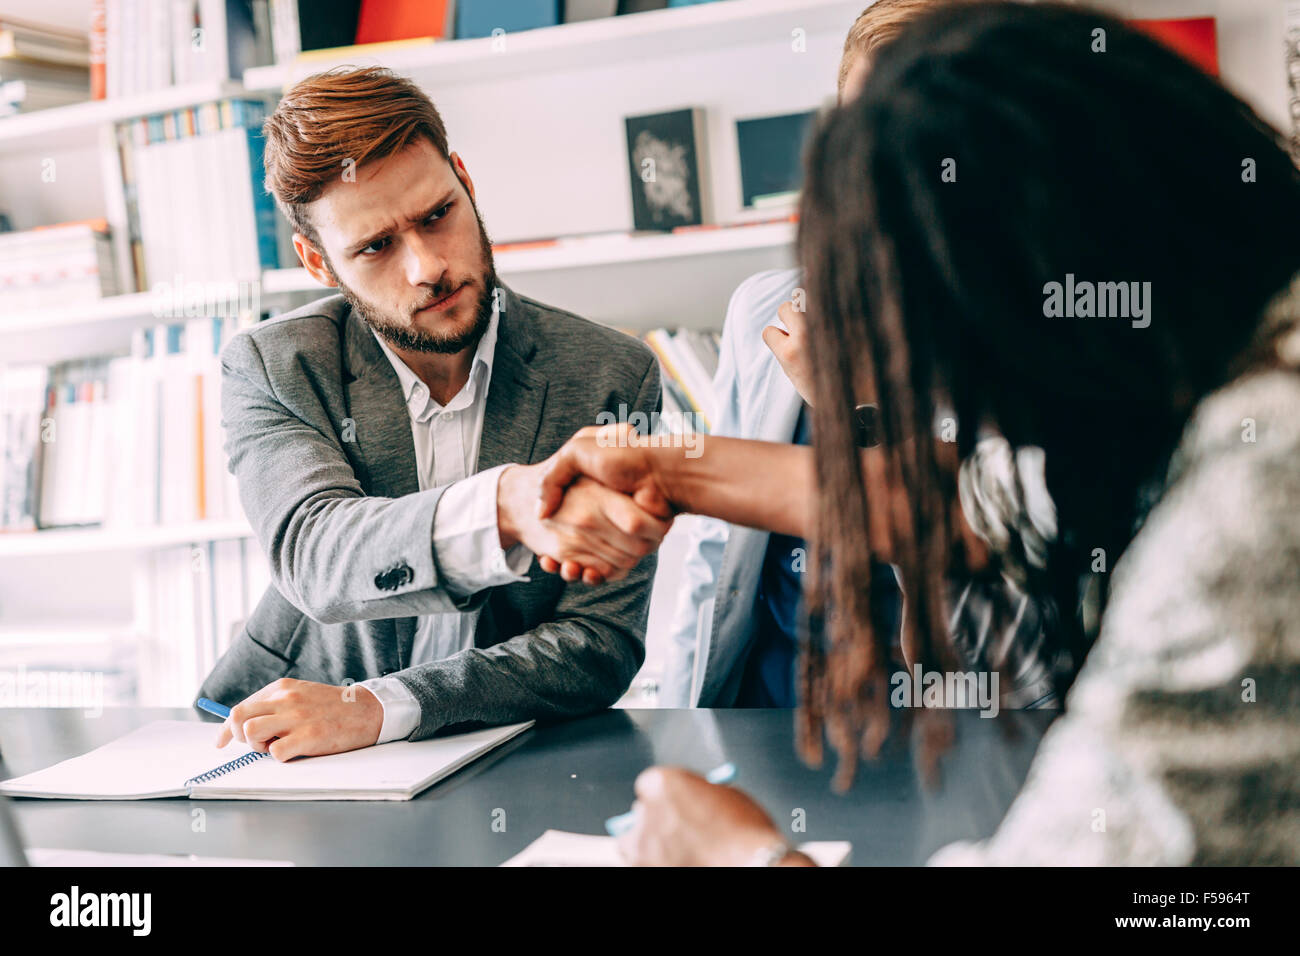 Business shaking hand with a client in office - Stock Image